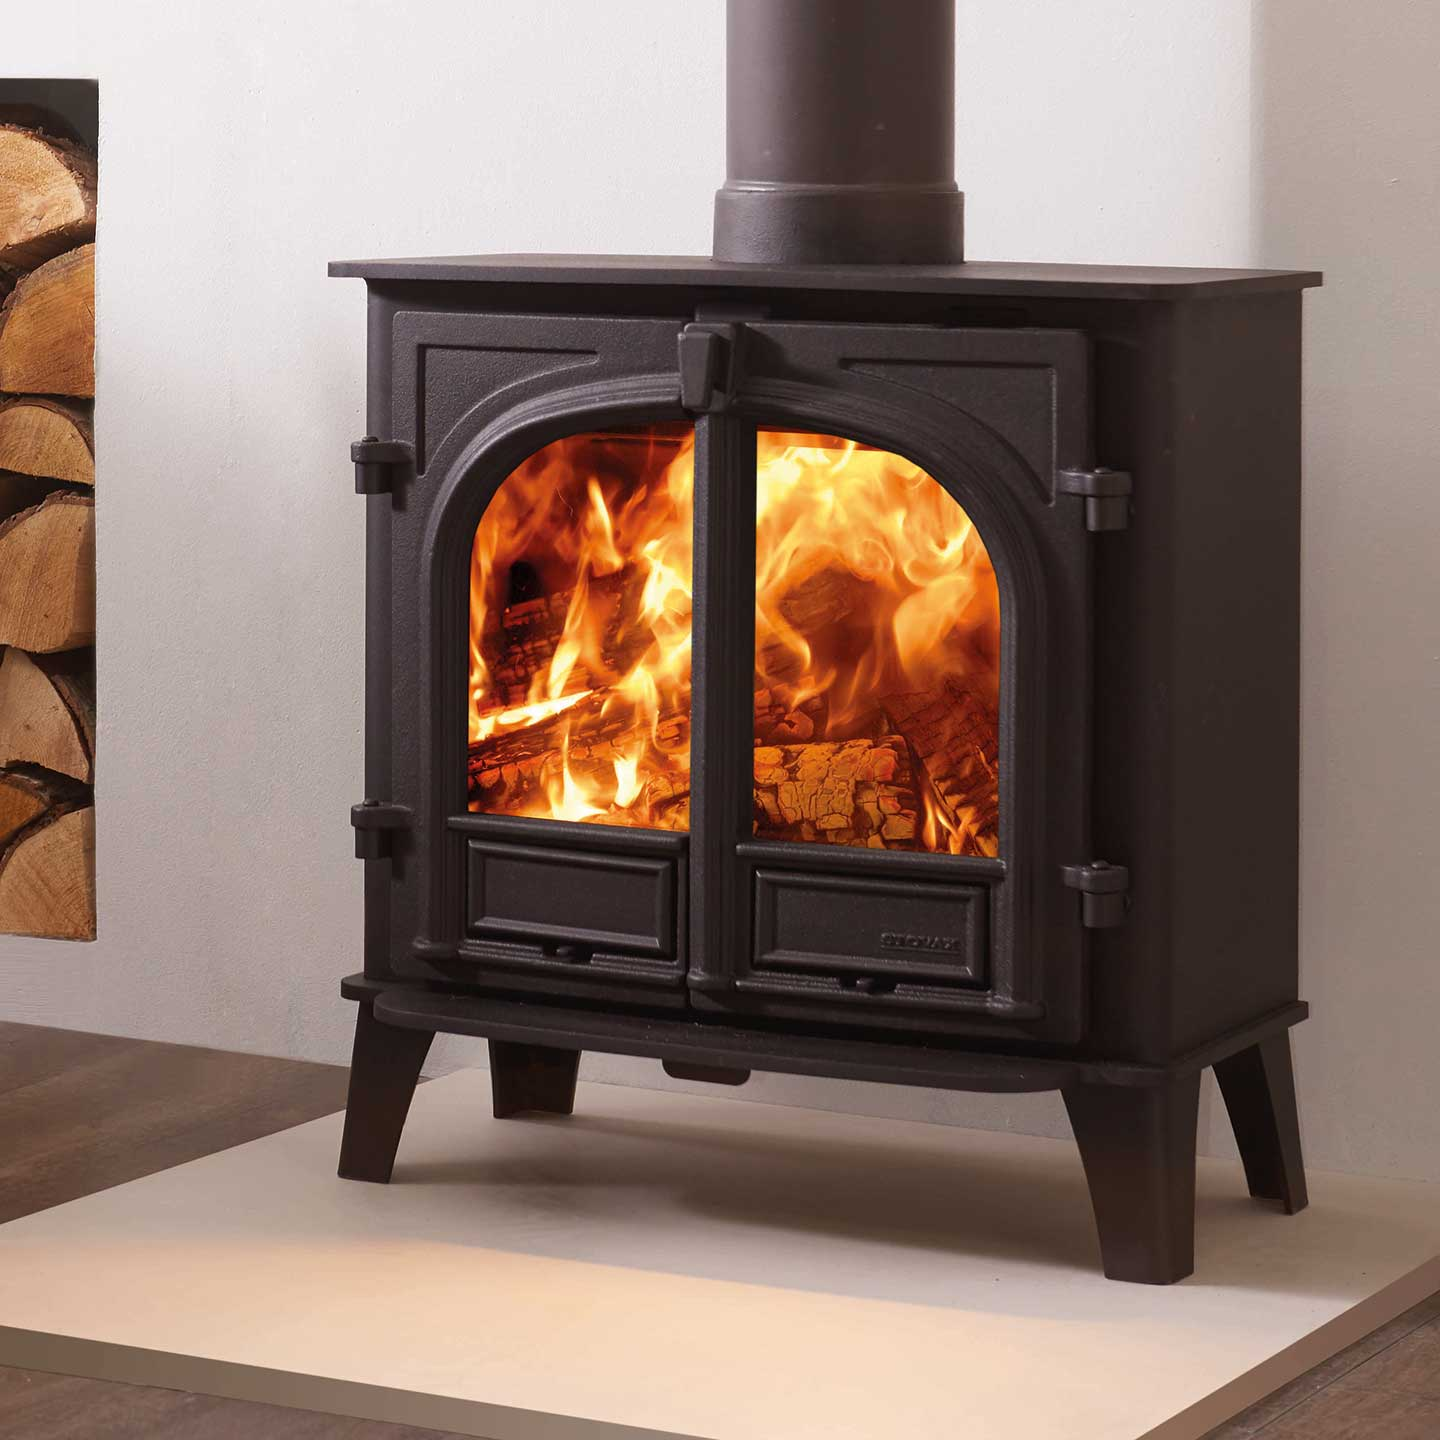 Stovax Stockton 5 Wide Multi Fuel Stove - The Stove Site ...